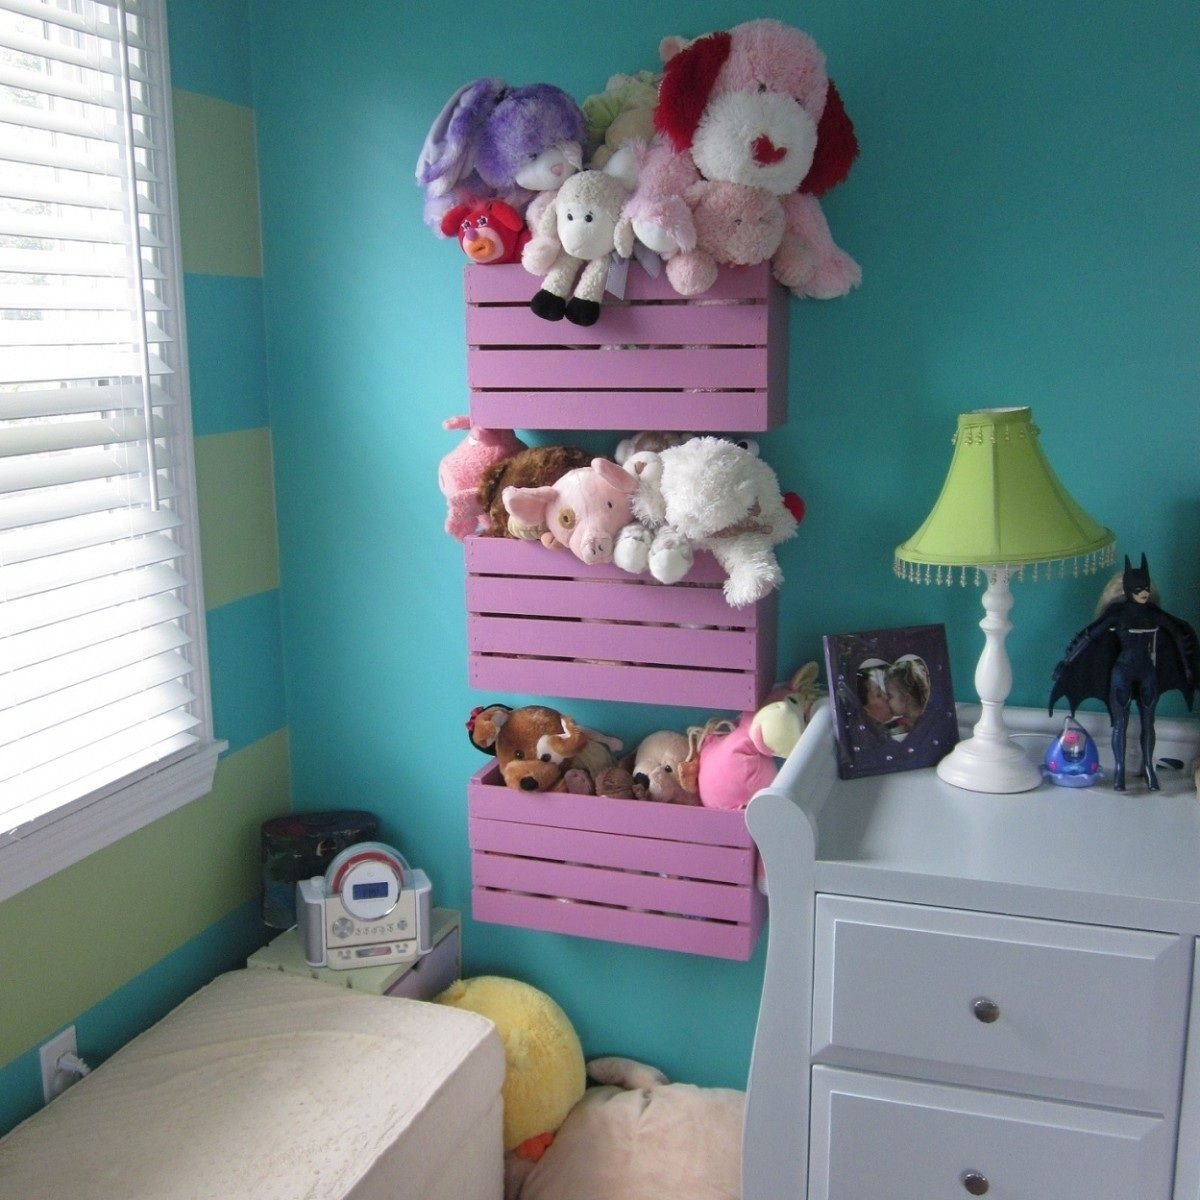 10 Spectacular Ideas For Stuffed Animal Storage best storage stuffed animal ideas zoo creative for of style and 2021